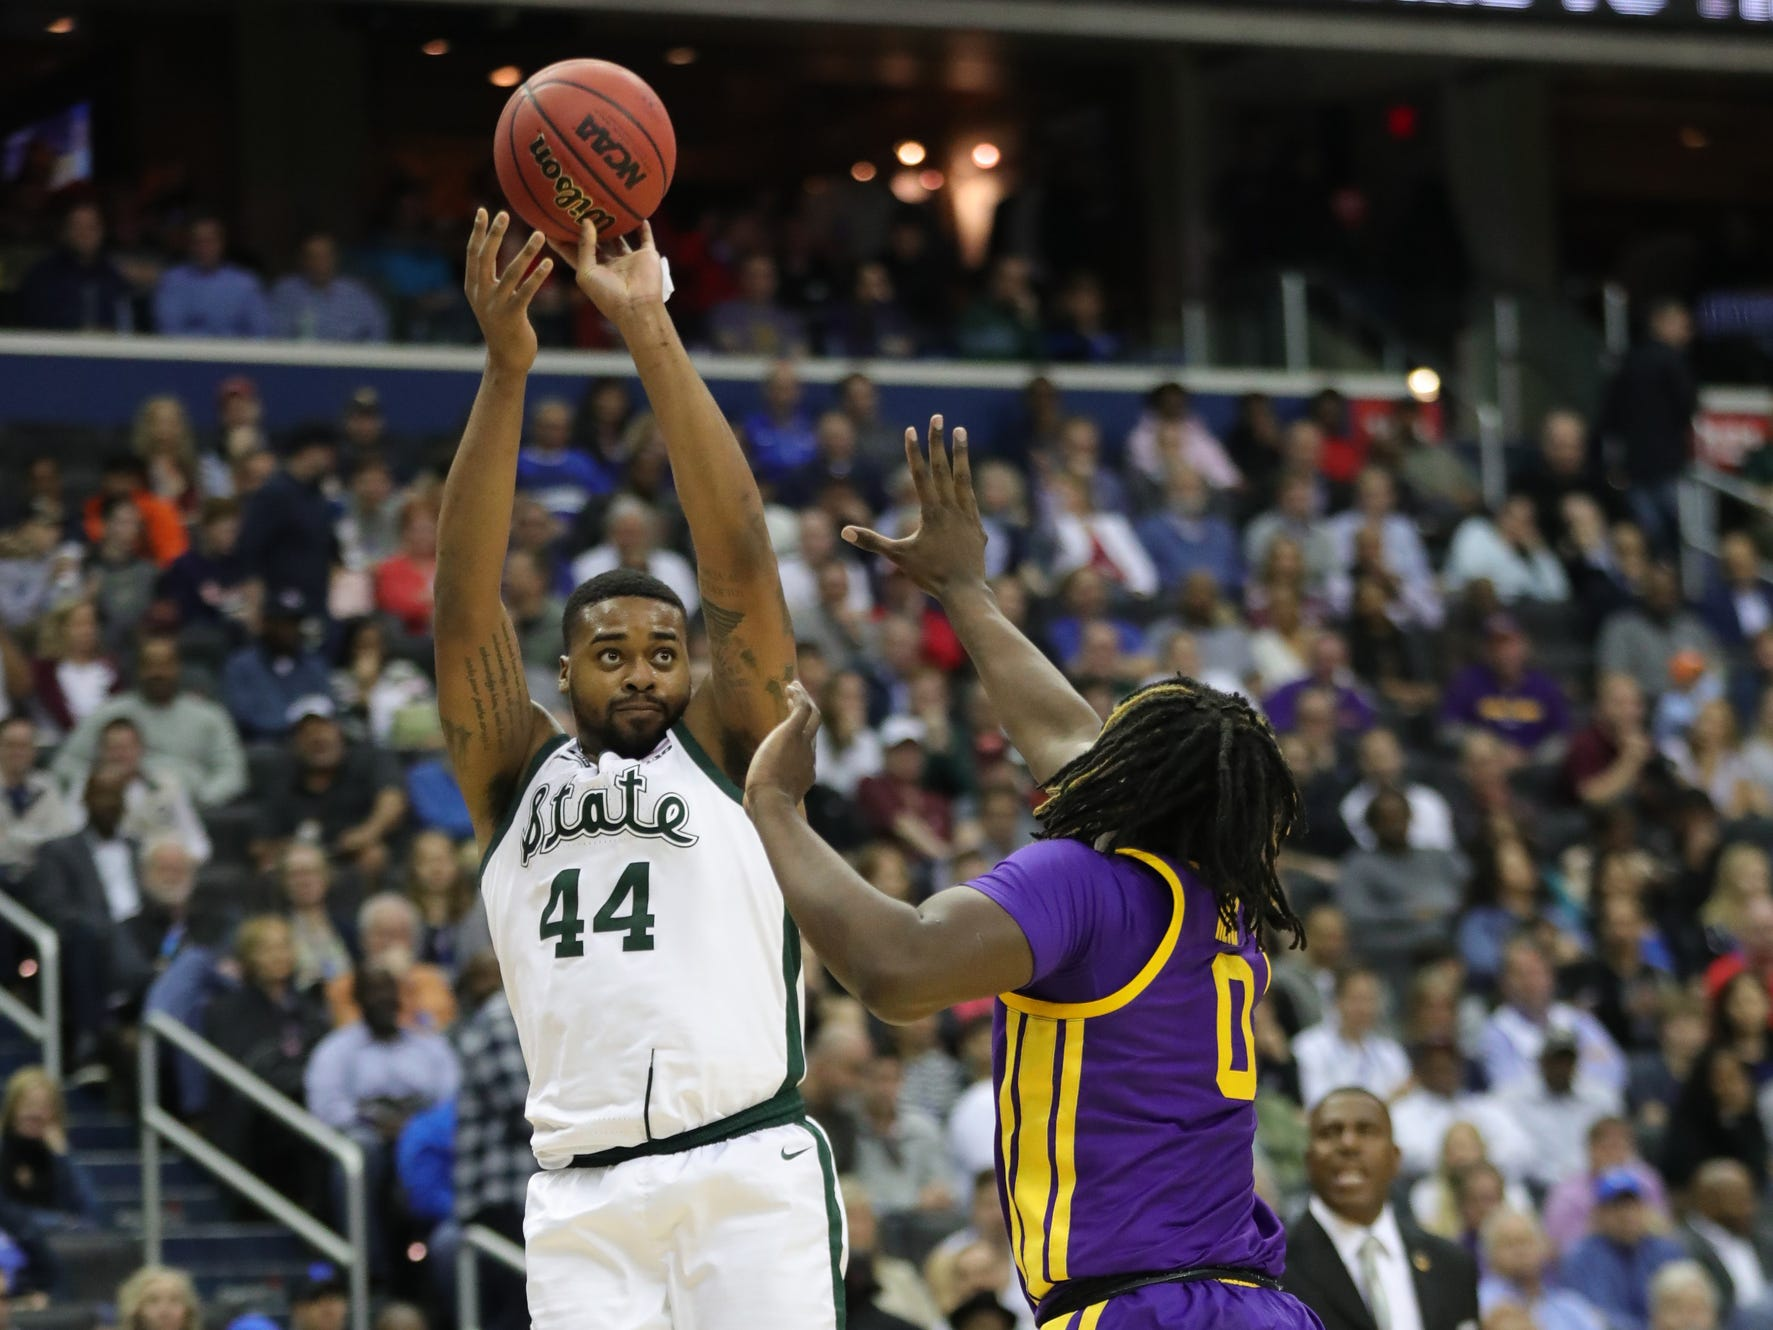 Michigan State forward Nick Ward scores against LSU forward Naz Reid during the first half of MSU's 80-63 win over LSU in the NCAA tournament on Friday, March 29, 2019, in Washington.